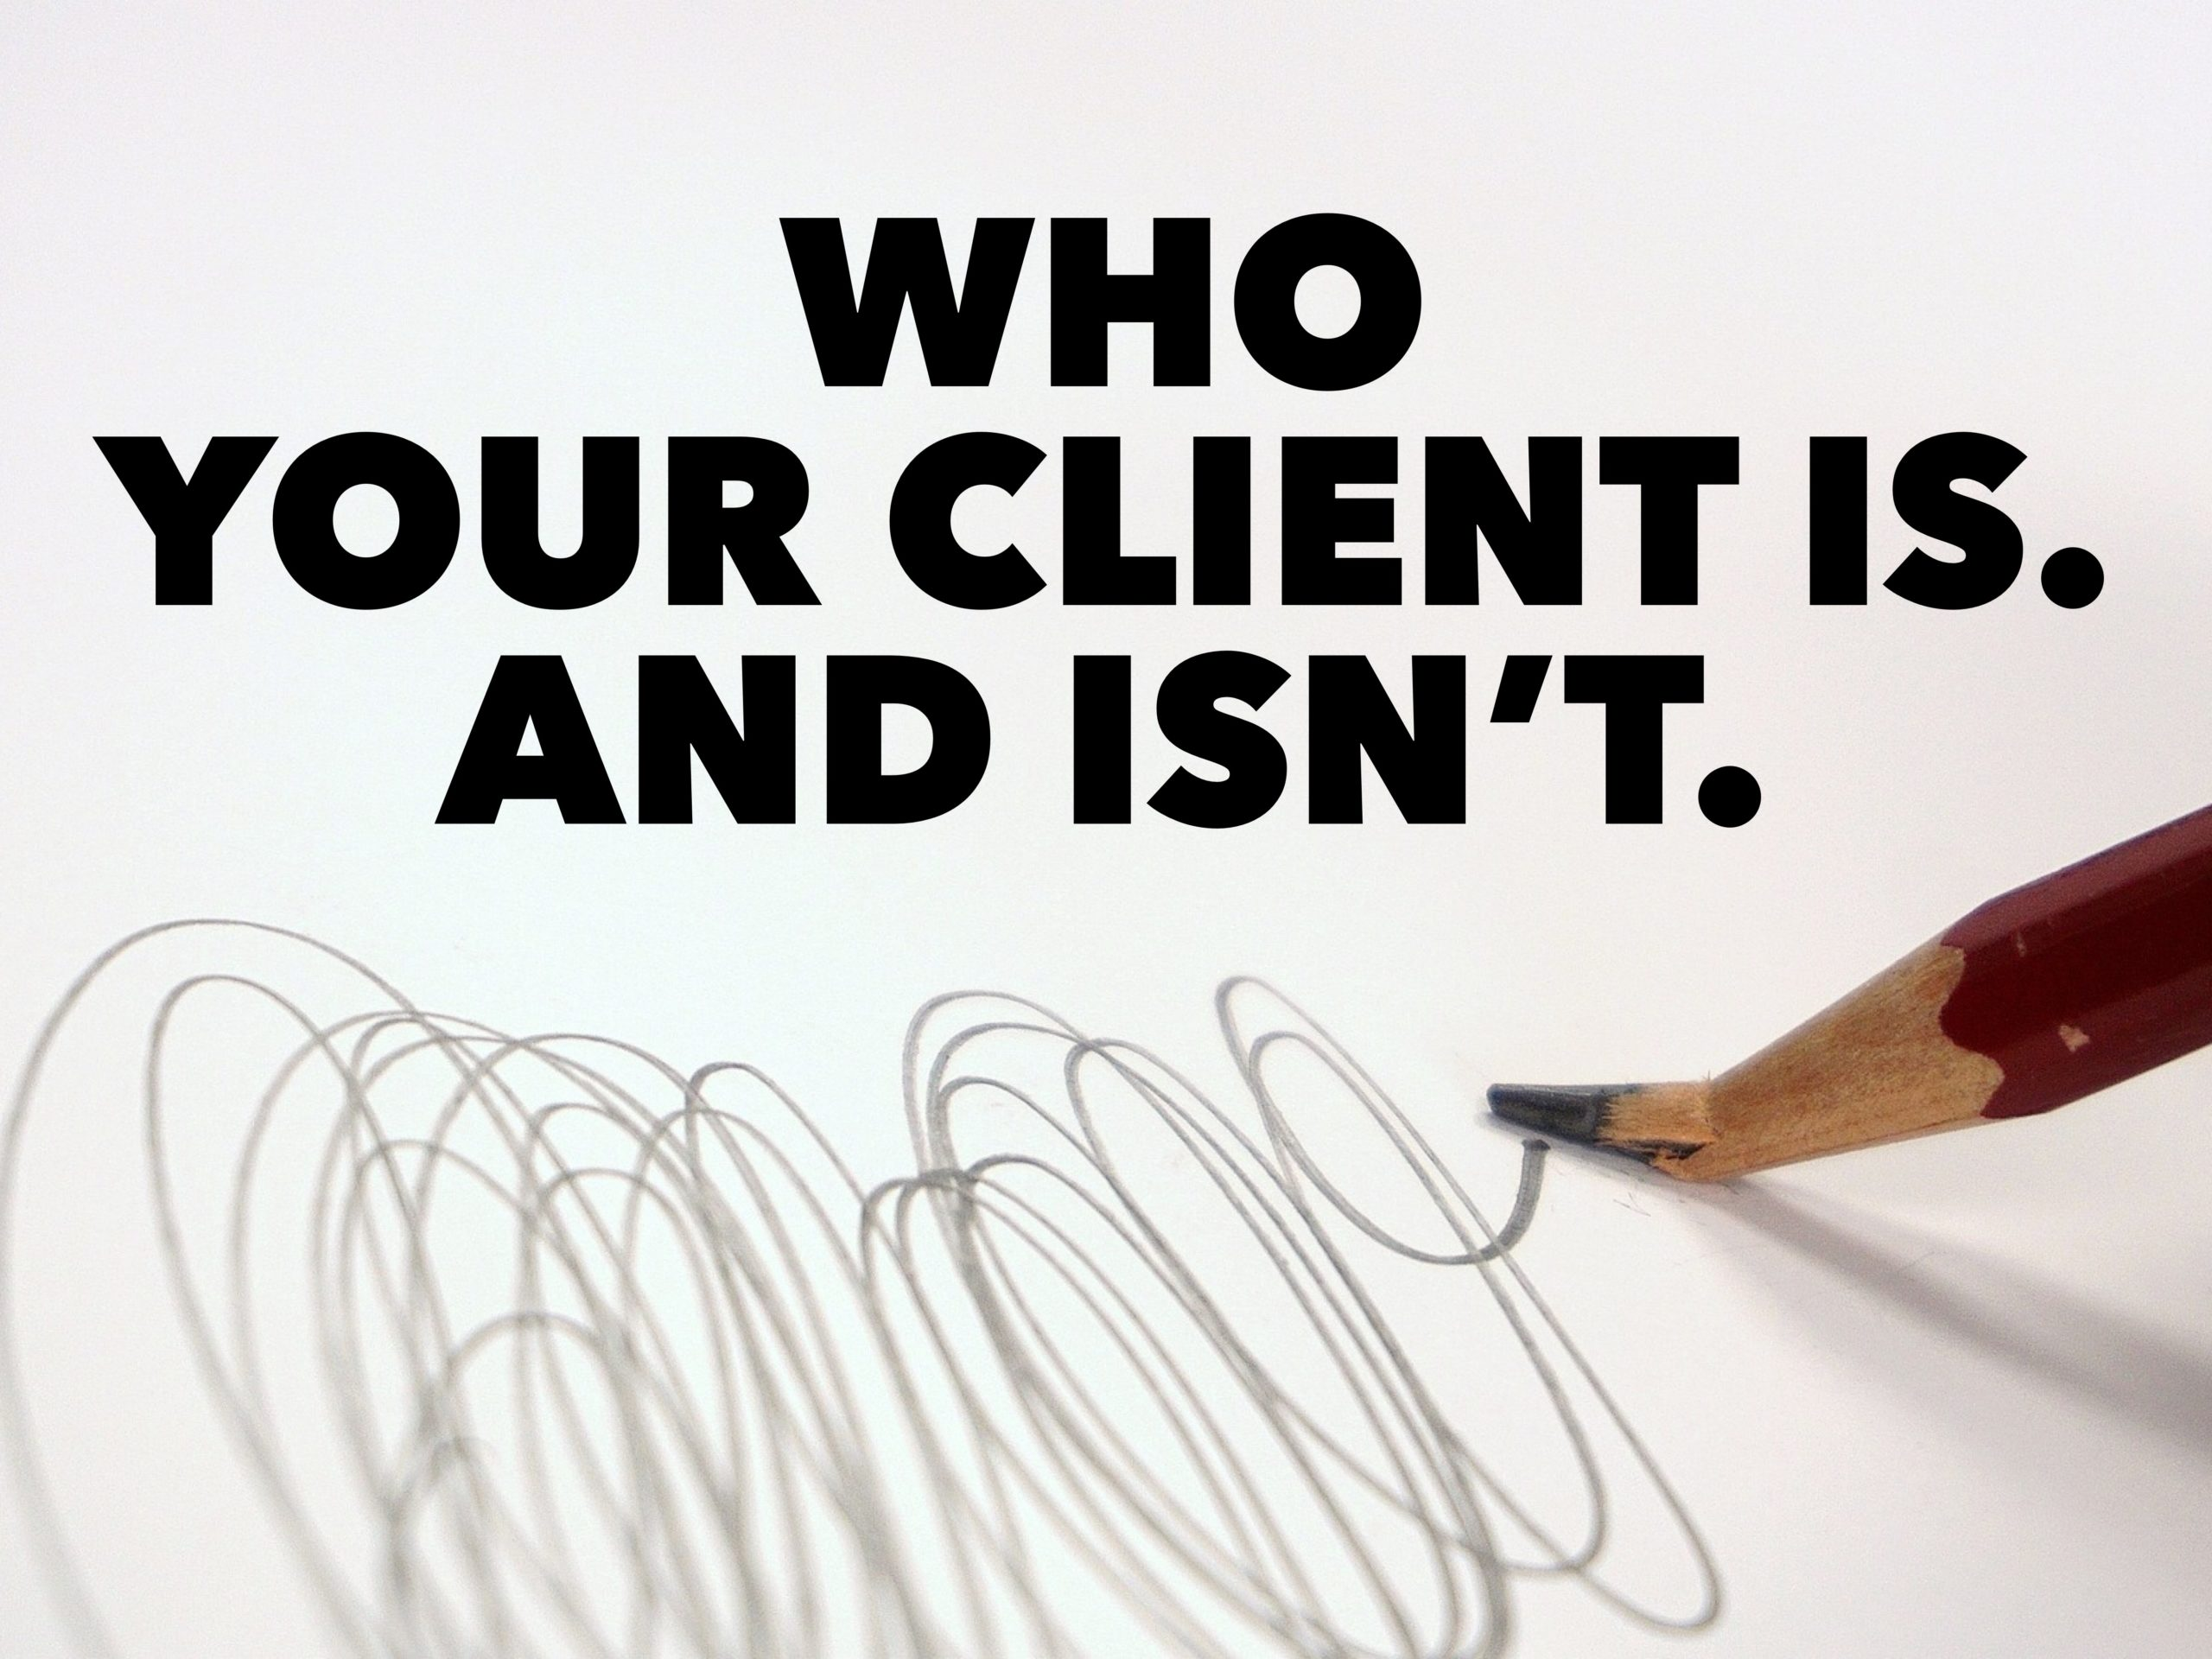 Who Your Client Is.